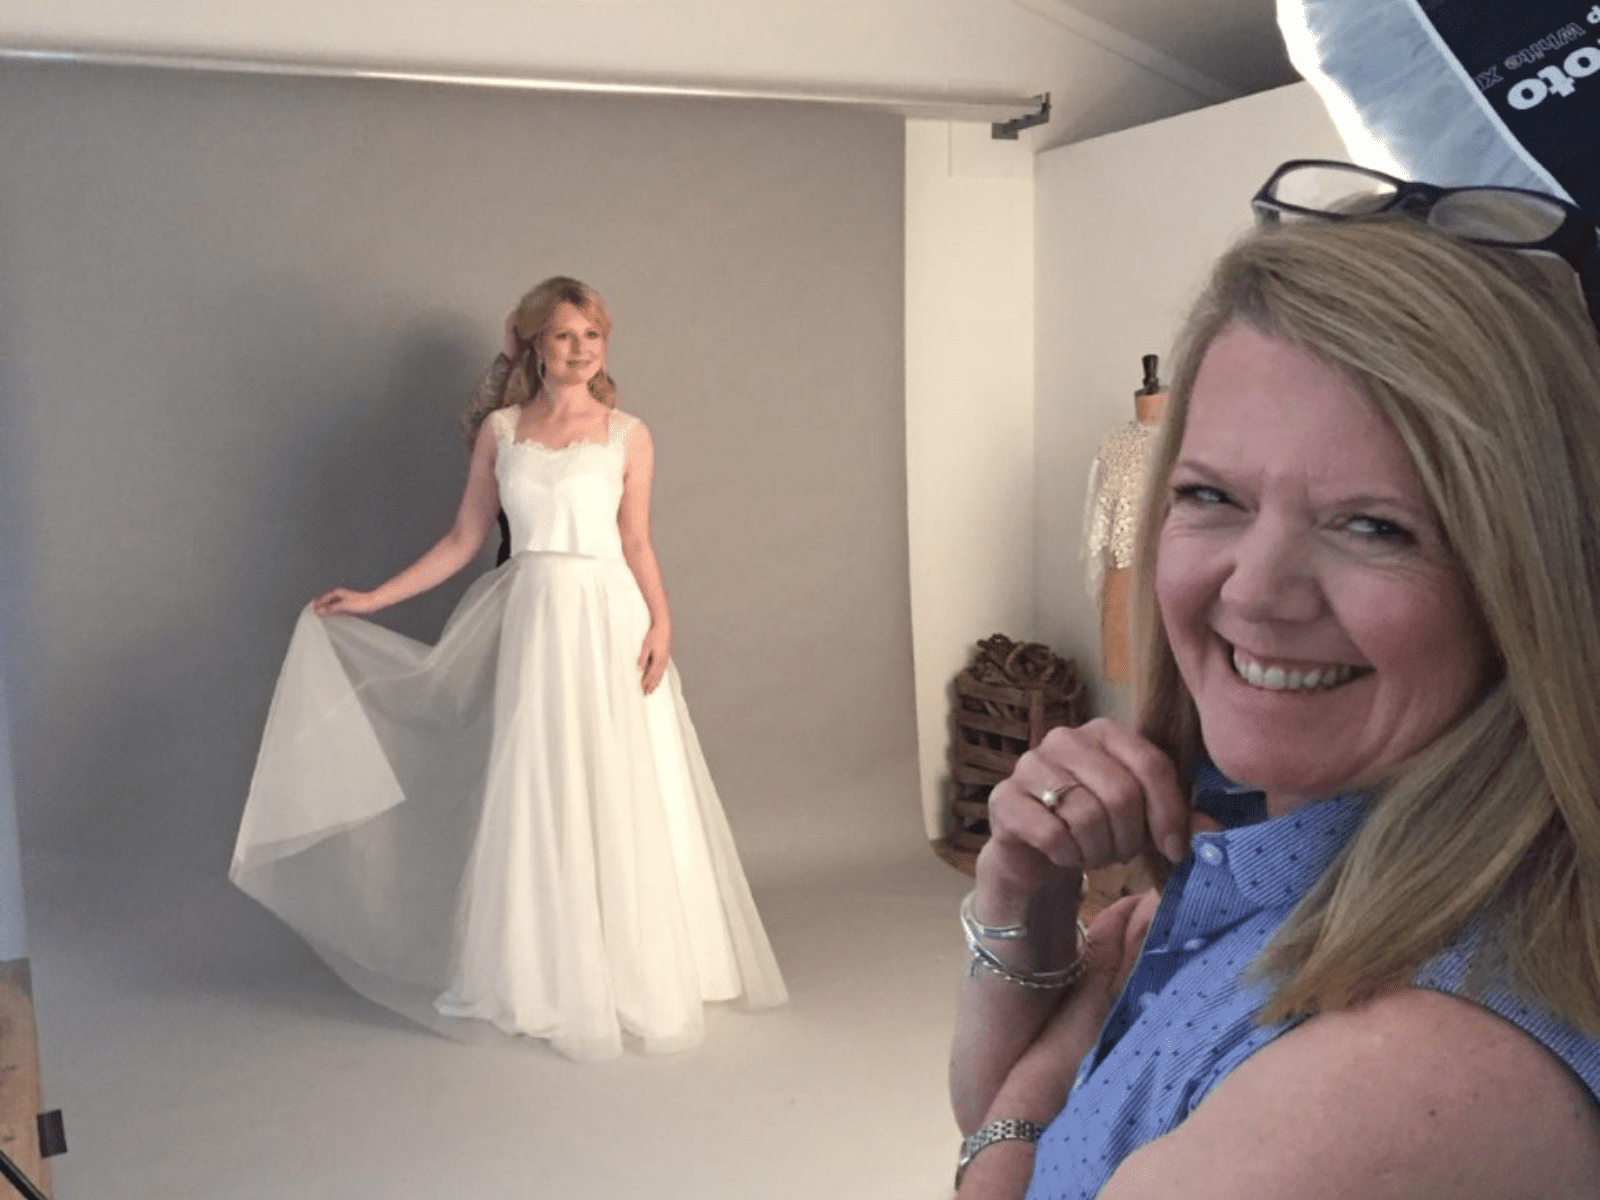 Boho Bride Creative Director Lynette at bridal shoot for The Freedom Collection